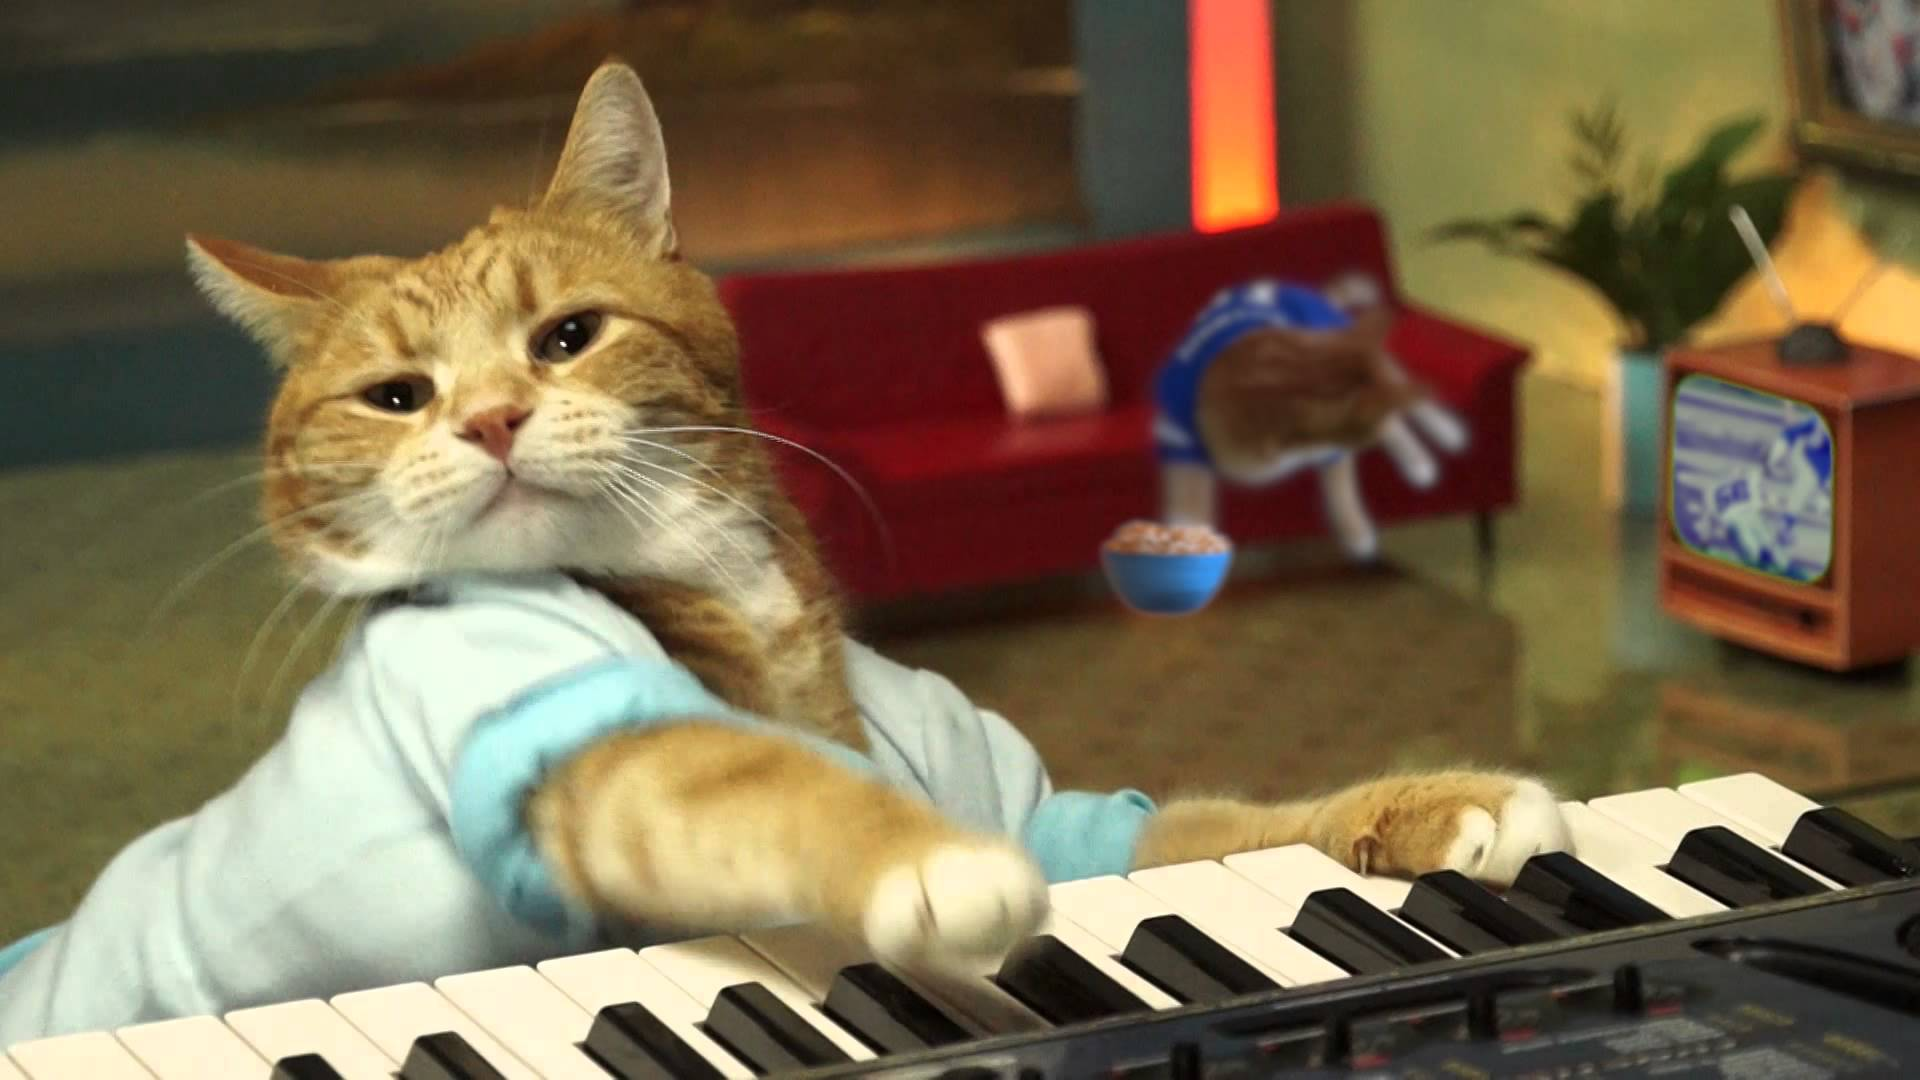 Bento the Keyboard Cat